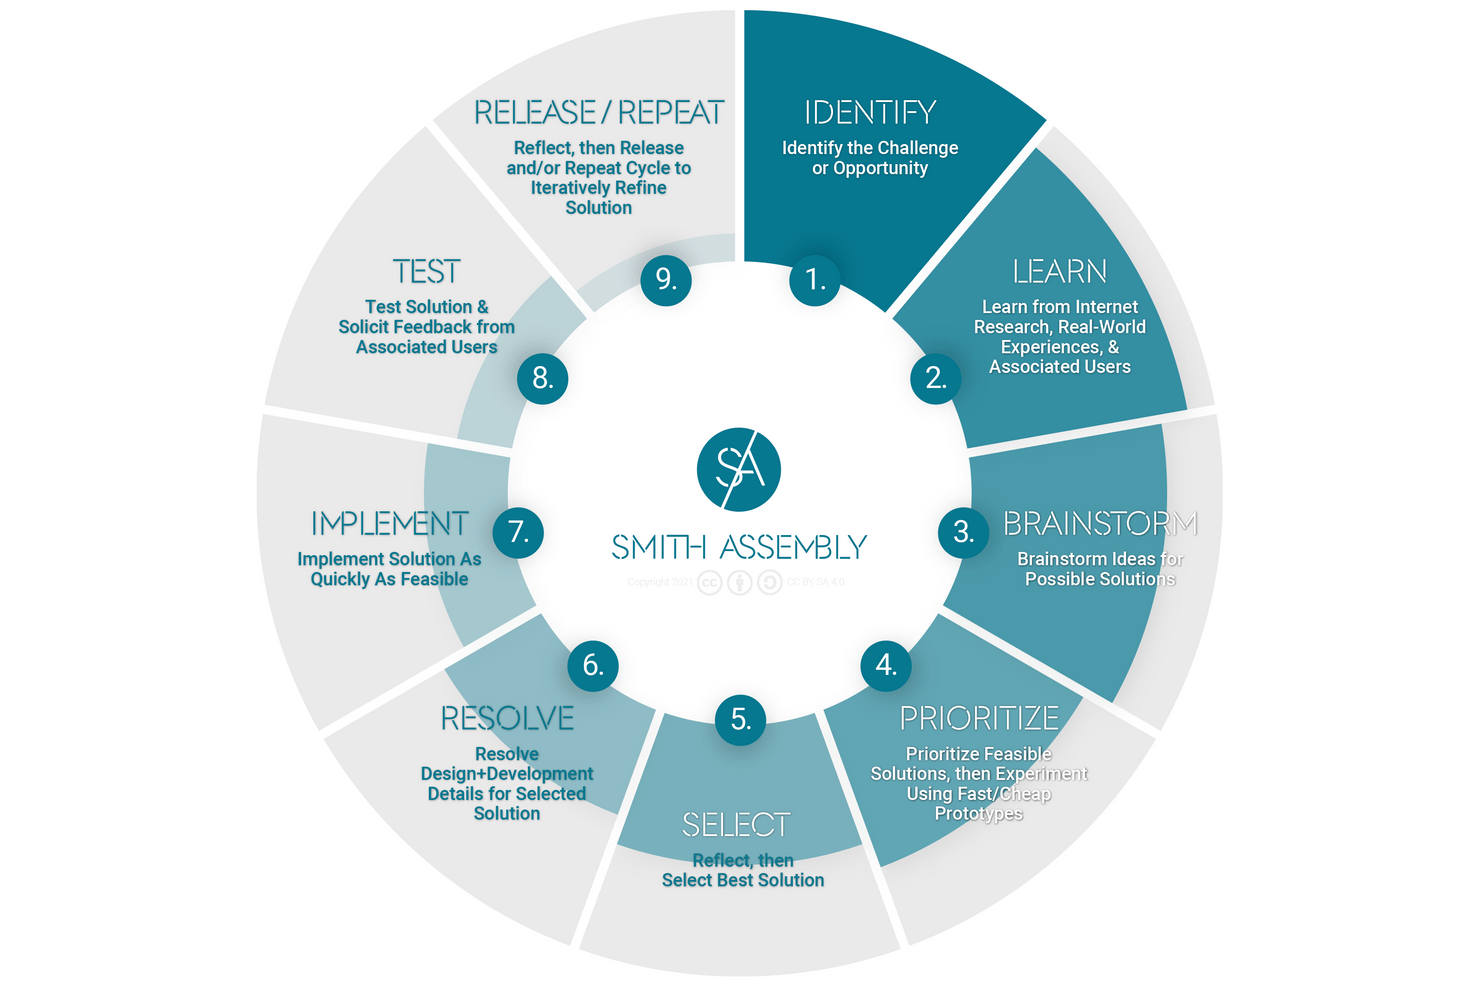 smith assembly's 9-step design process (identify, learn, brainstorm, prioritize, select, resolve, implement, test, and release/repeat)